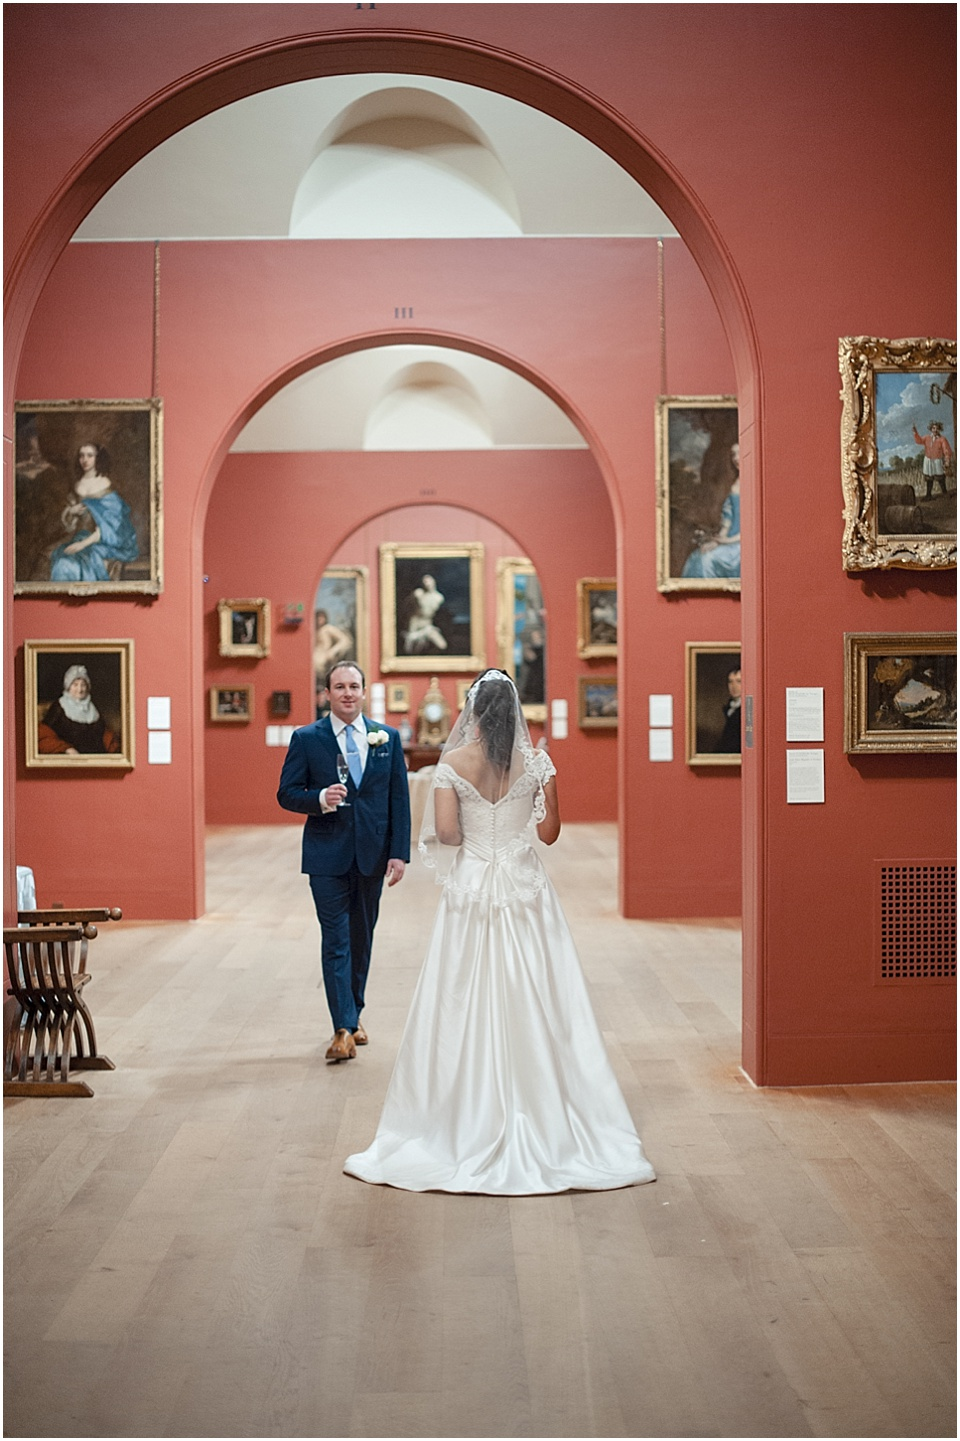 Dulwich-Gallery-Multicultural-wedding-Plenty-to-Delcare-Photography-www.nubride.com_4158.jpg